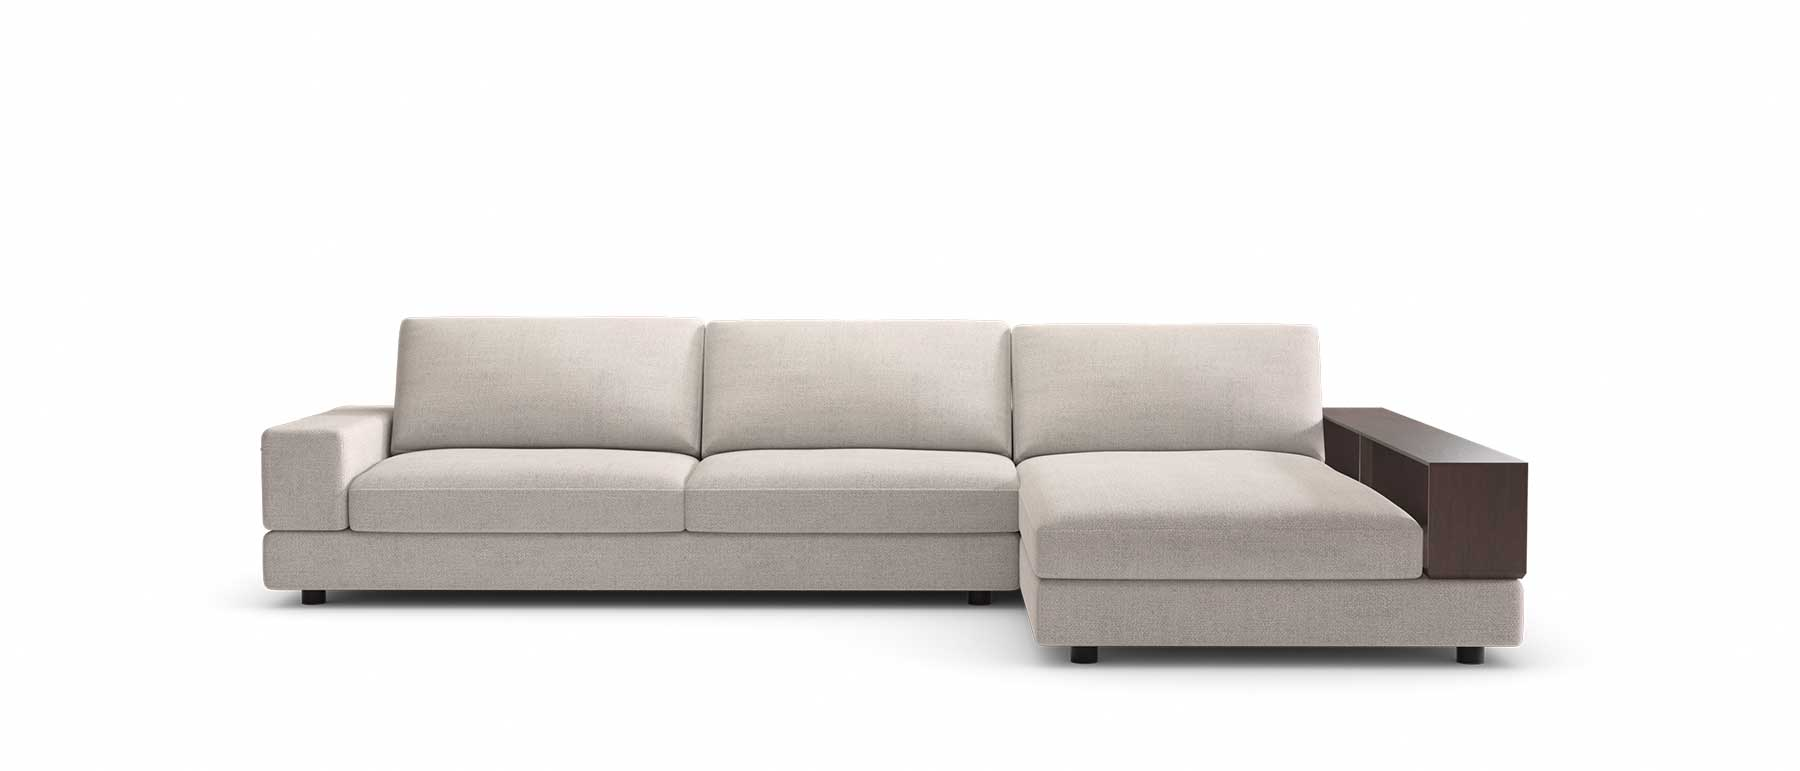 Sofa For Sale Bahrain Jasper Modular Sofa Award Winning Design Modular Lounge